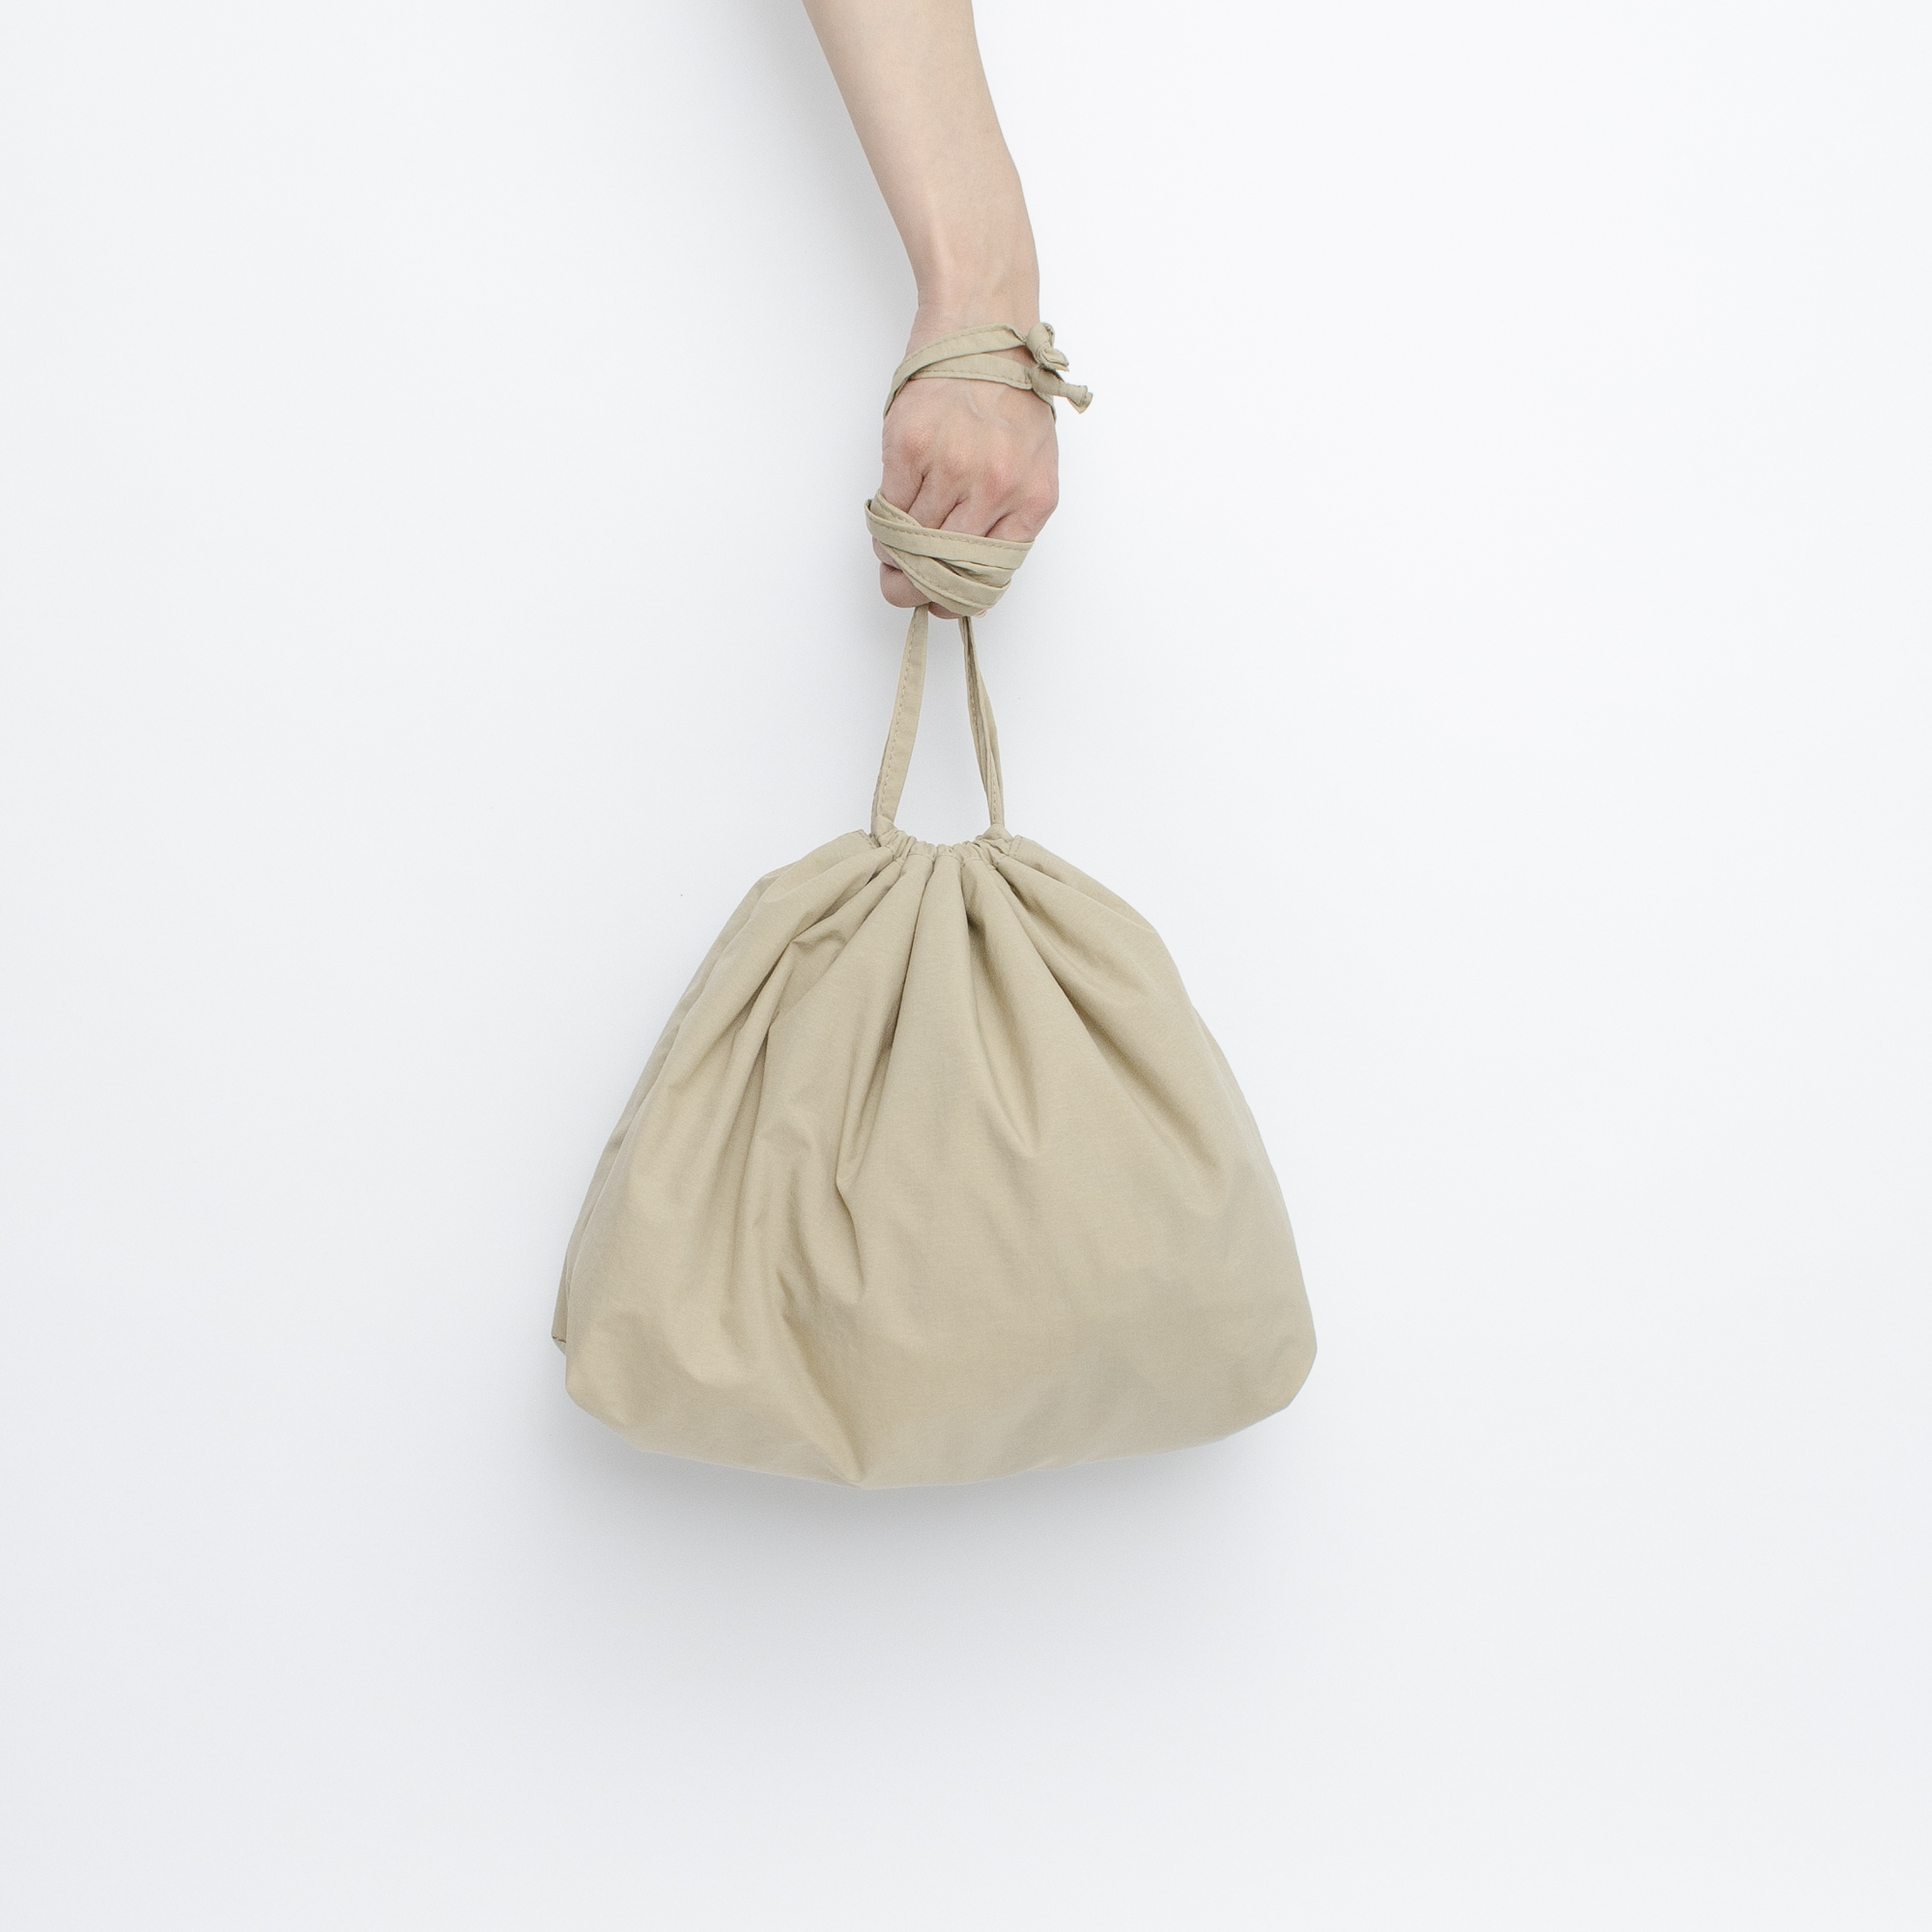 KaILI TOY NOT COMPACT ECOBAG BEIGE